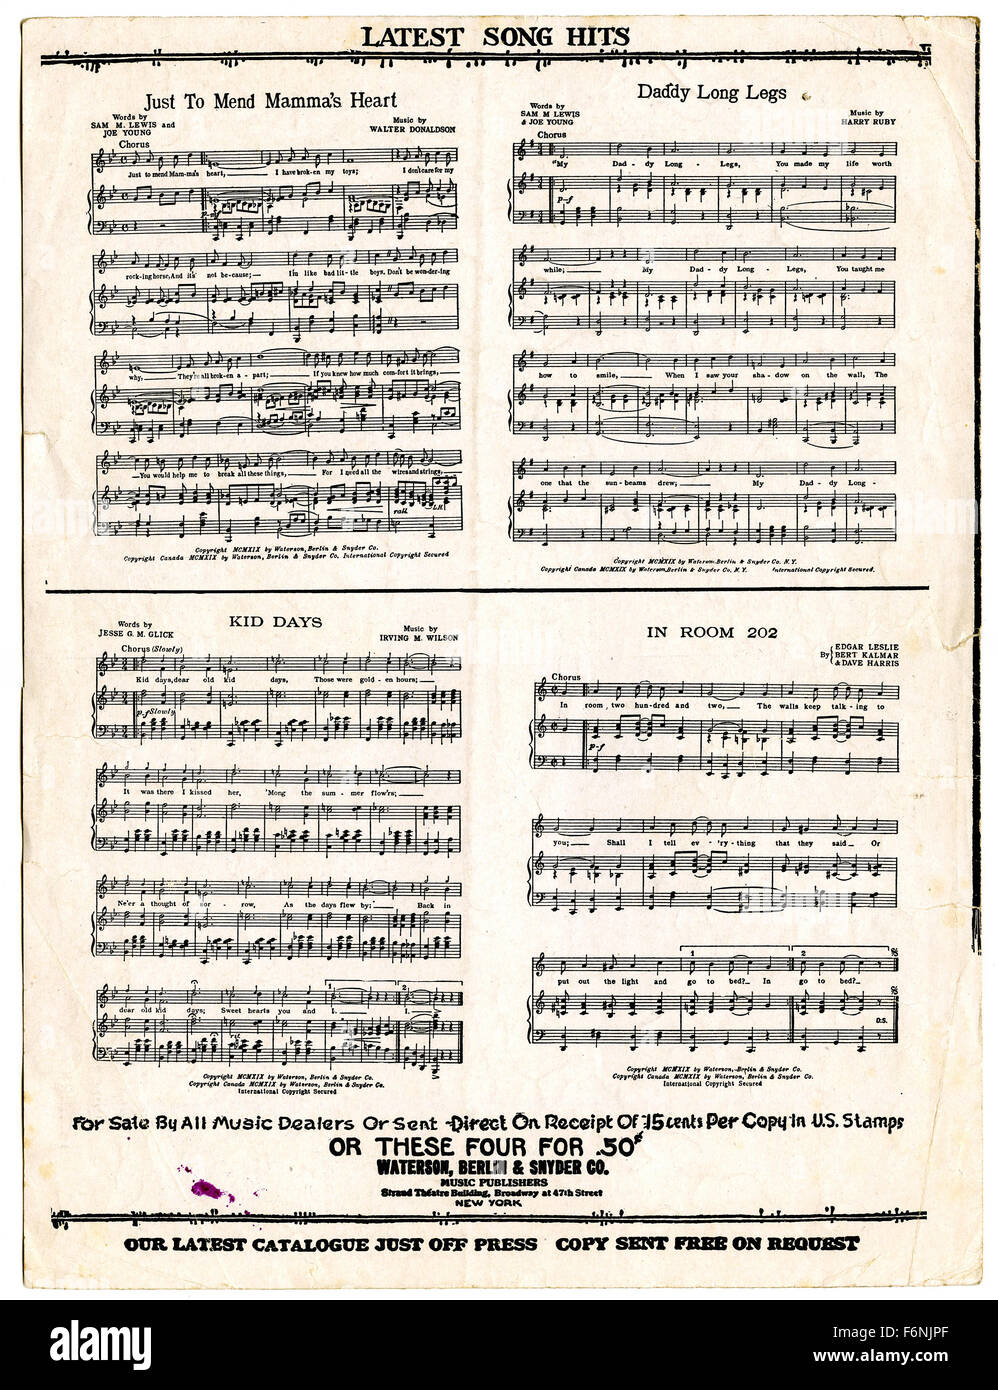 Collection of Latest Song Hits, 1919, from back side of piano sheet music - Stock Image